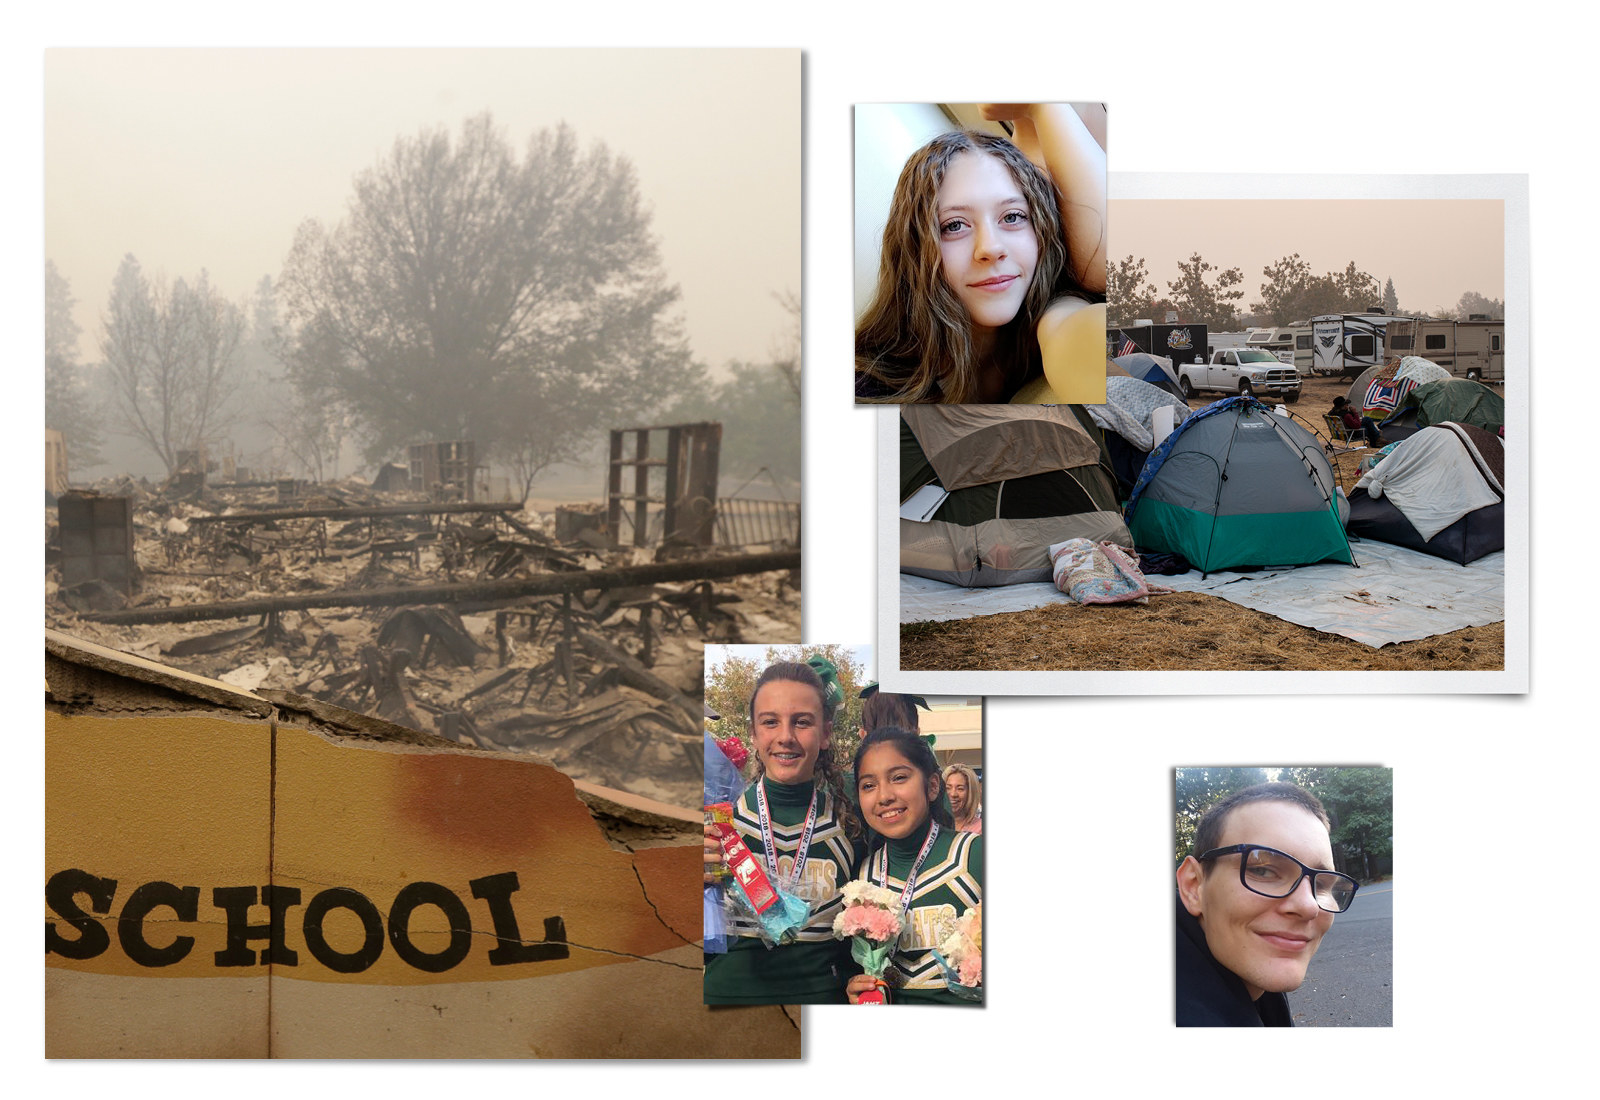 Months After The Camp Fire Destroyed Their Town, Students Are Still Grappling With The New Norm